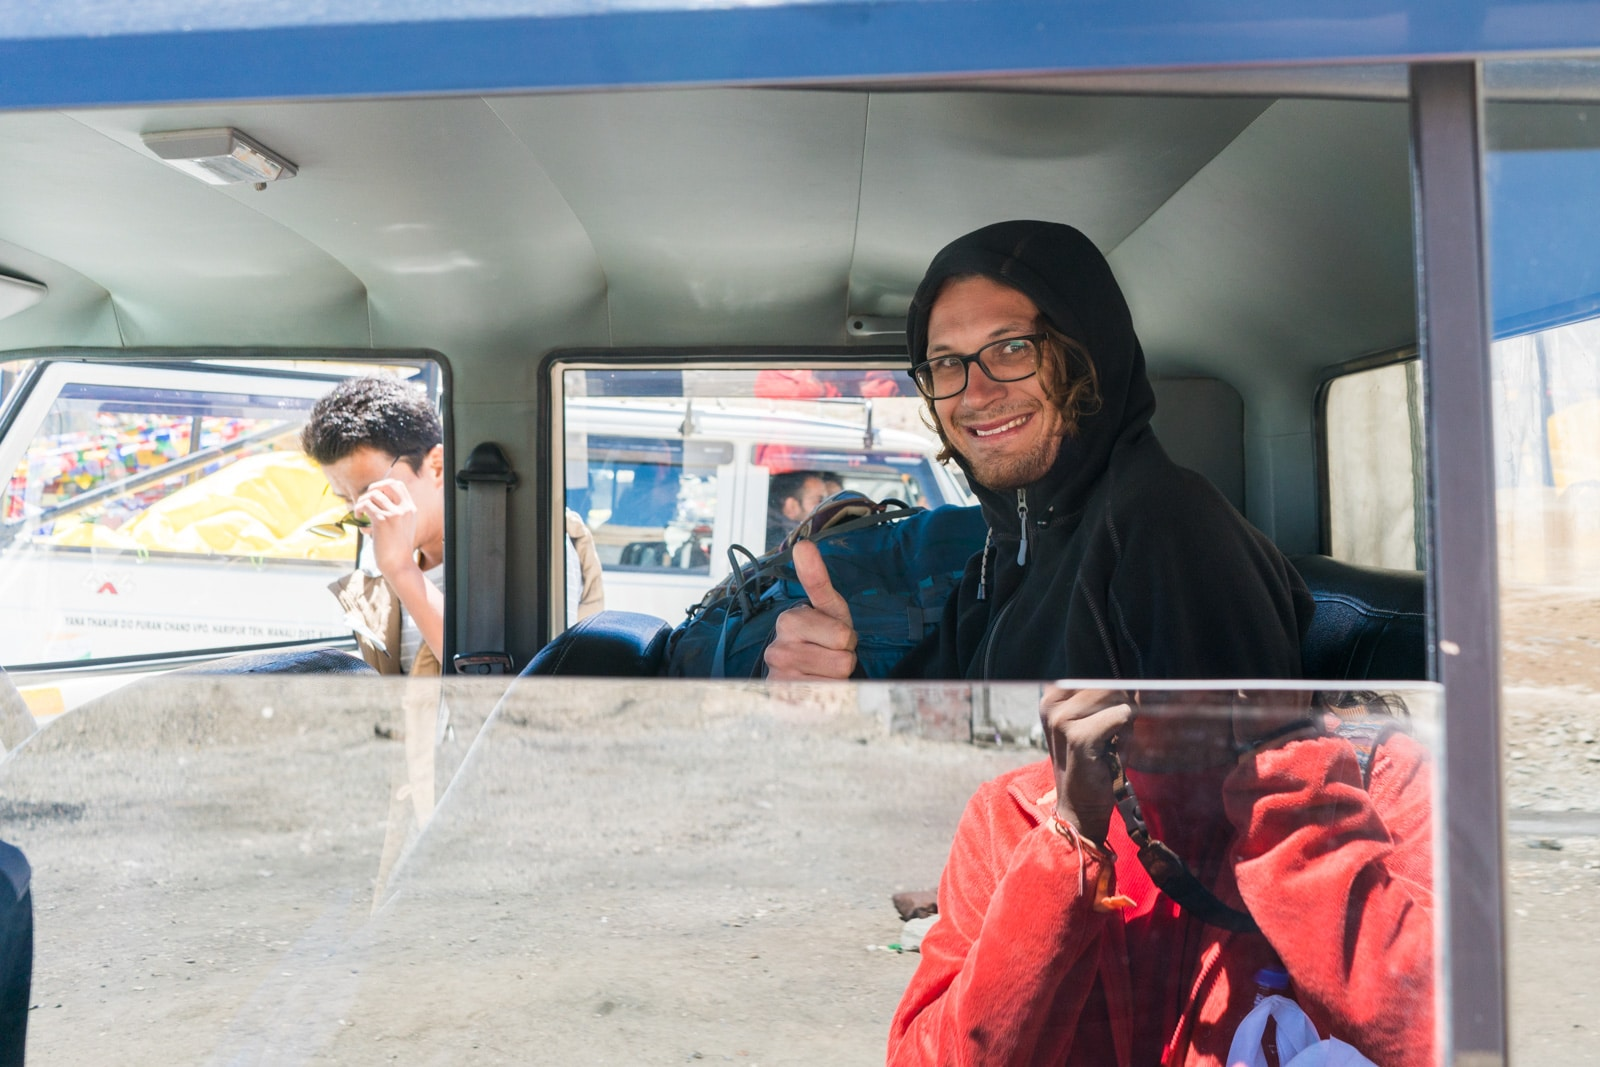 Hitchhiking the Leh - Manali highway in India - Sebastiaan inside a truck - Lost With Purpose travel blog